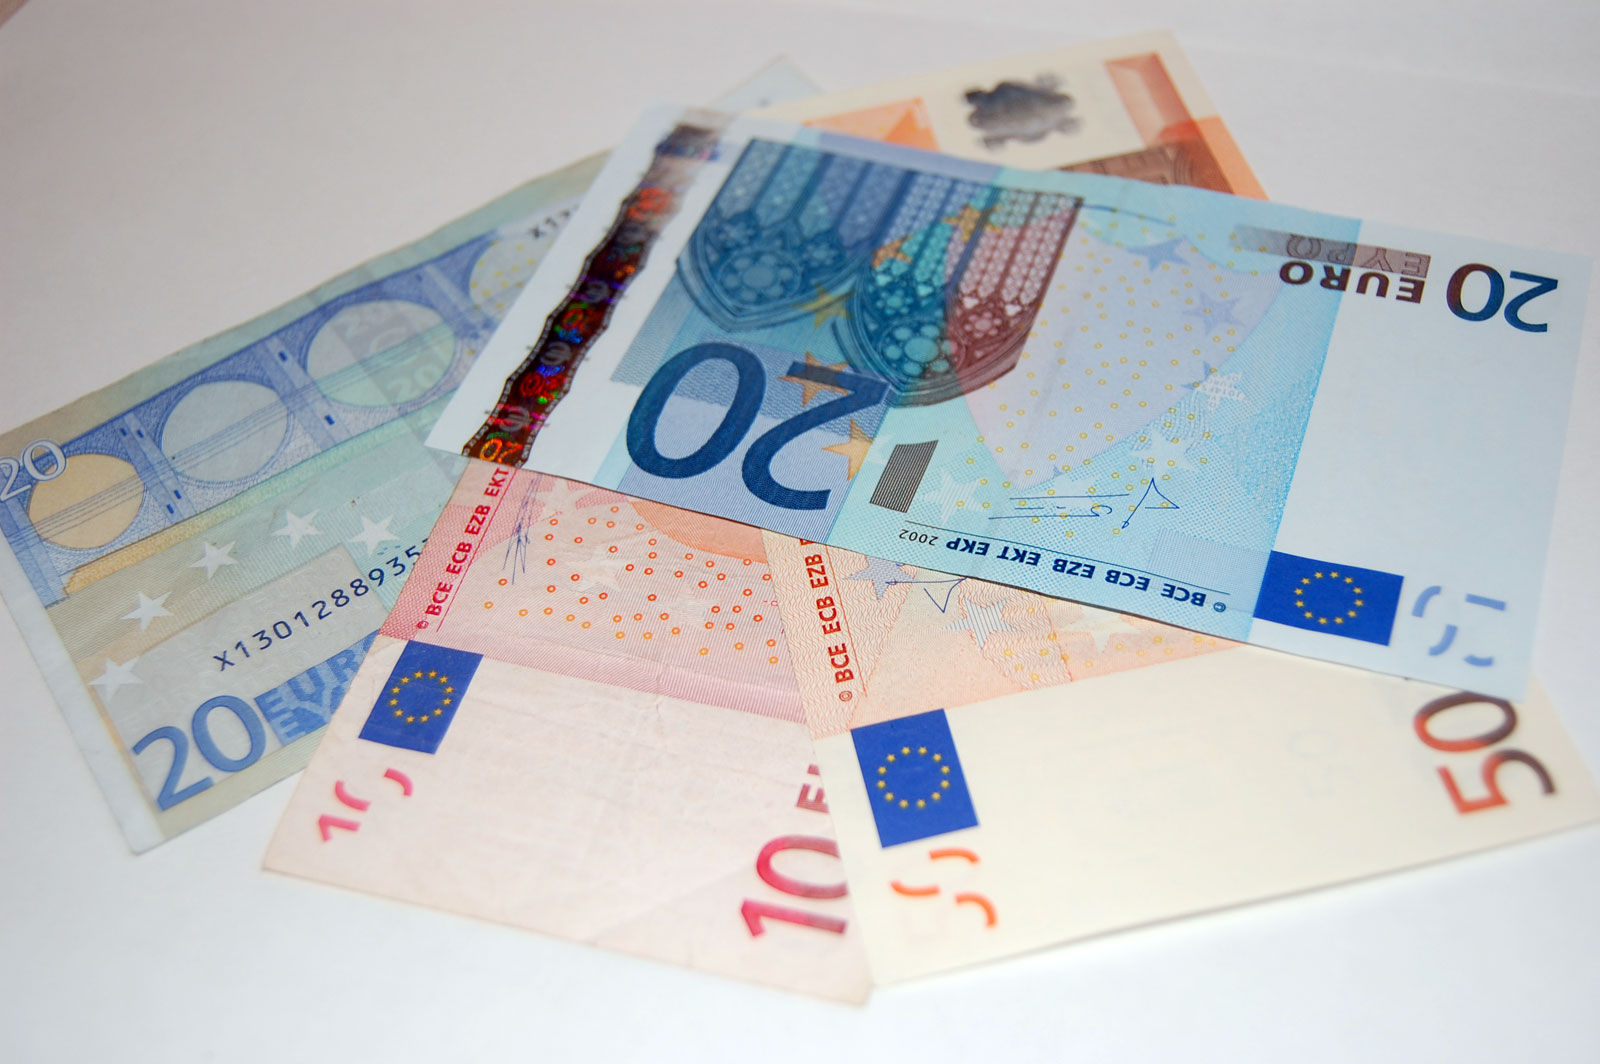 Fan-of-euro-banknotes